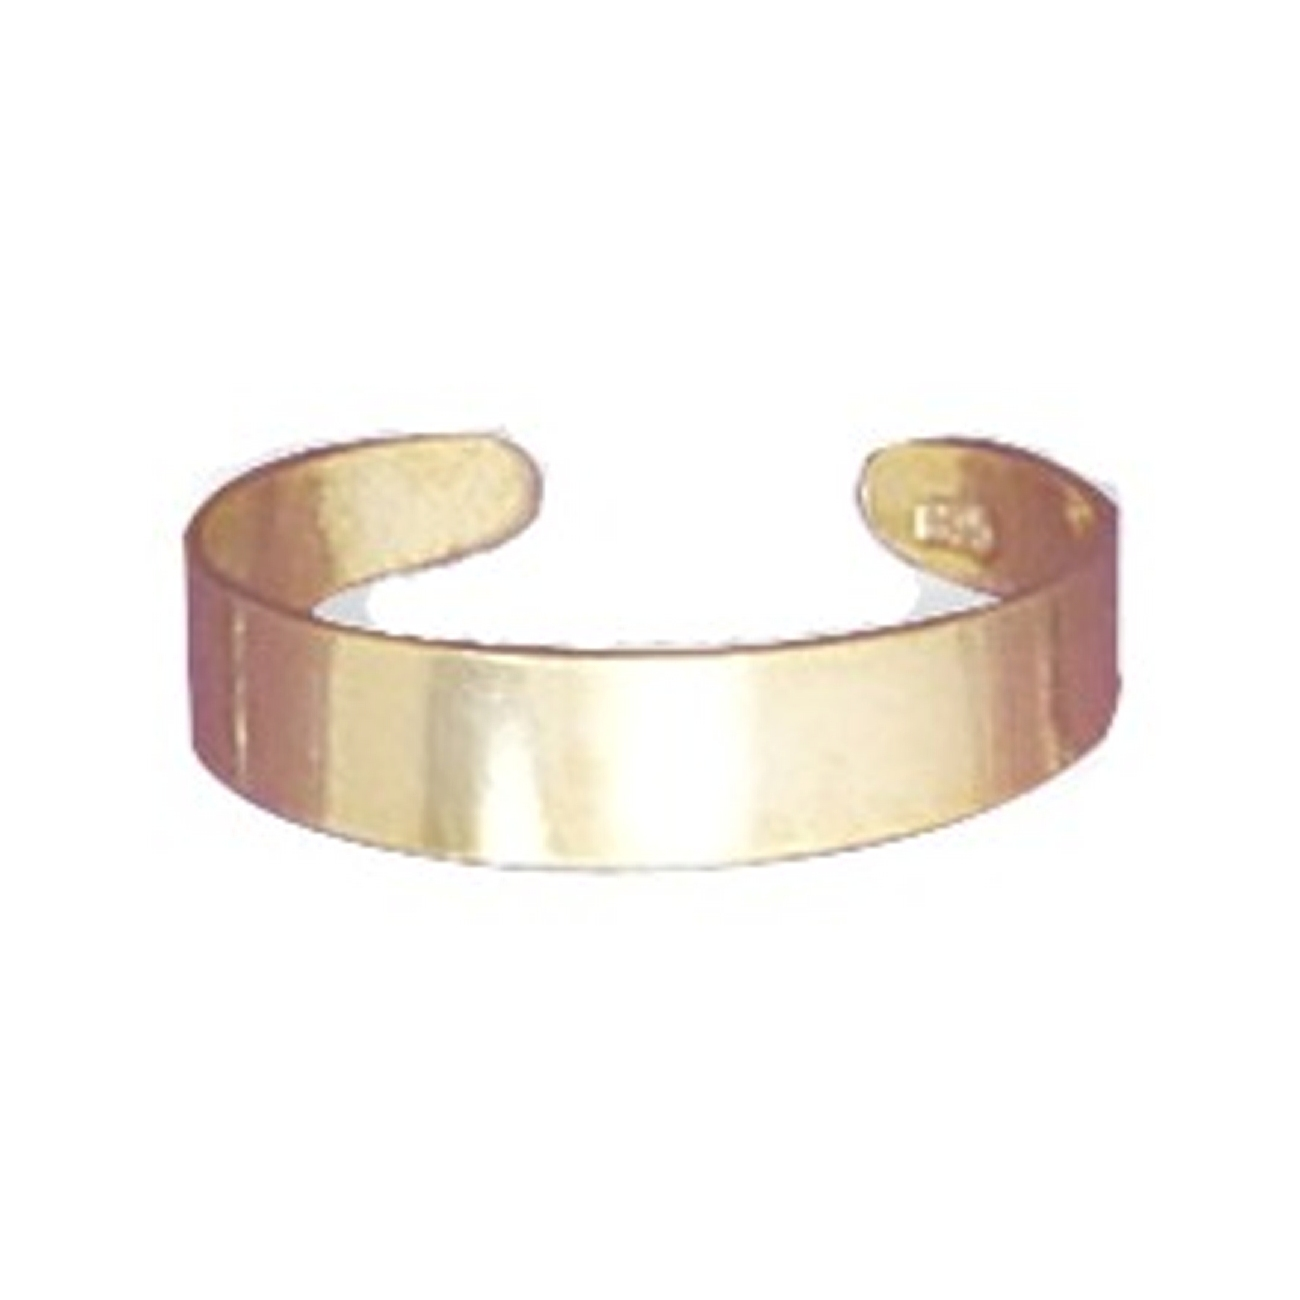 14kt Gold Plated 4mm Plain Band Adjustable Toe Ring